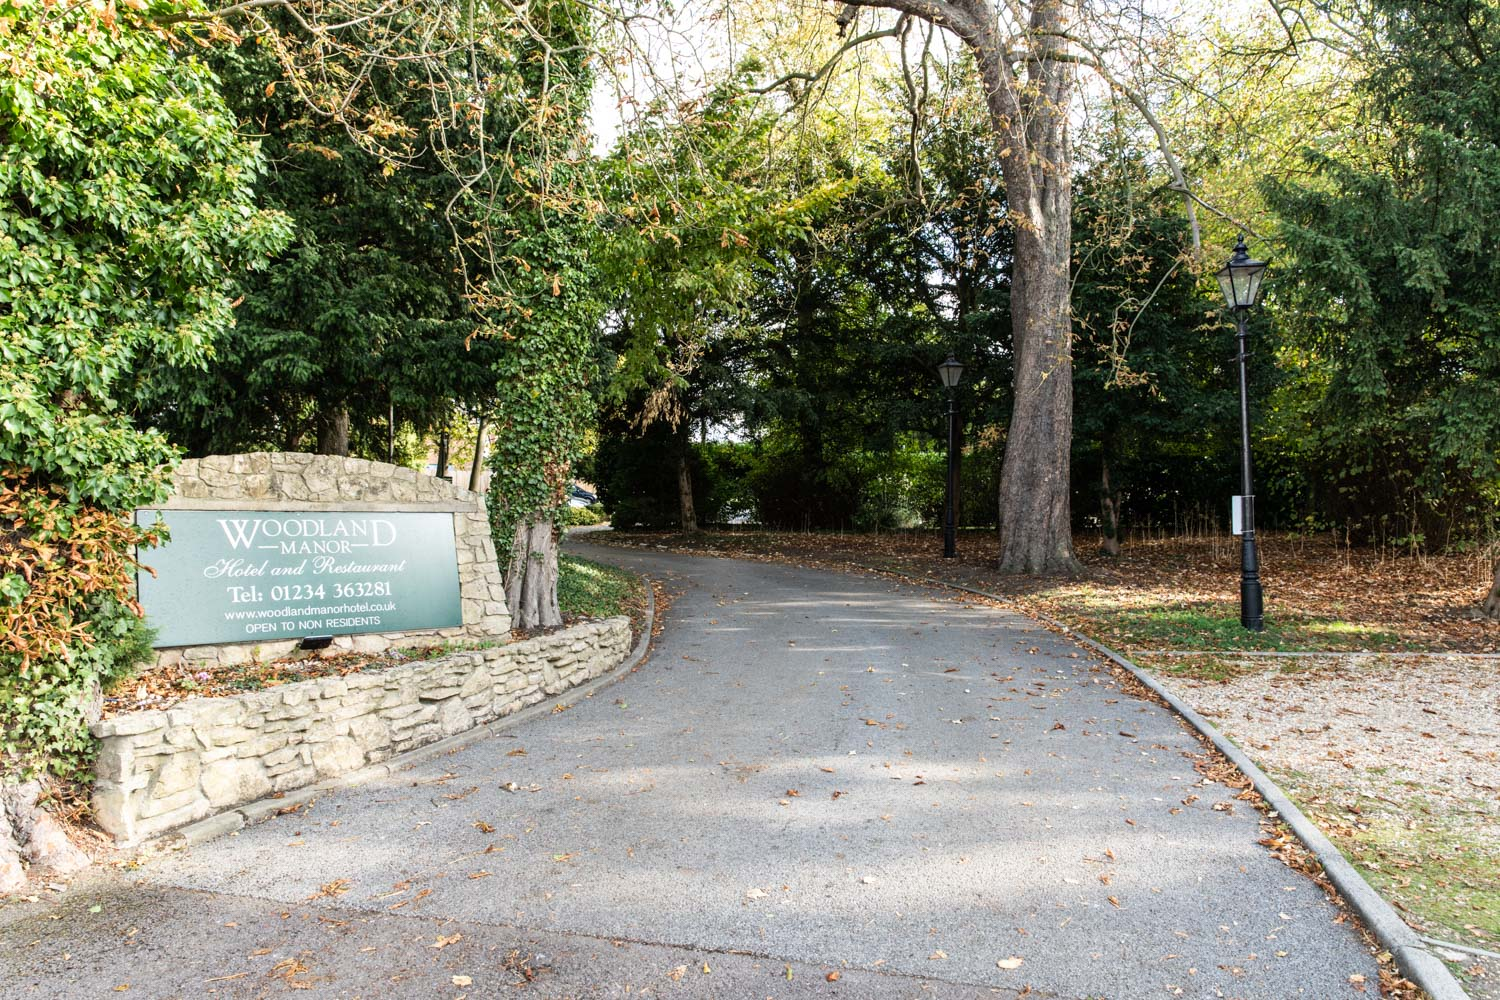 driveway entrance to Woodland Manor Hotel & Restaurant